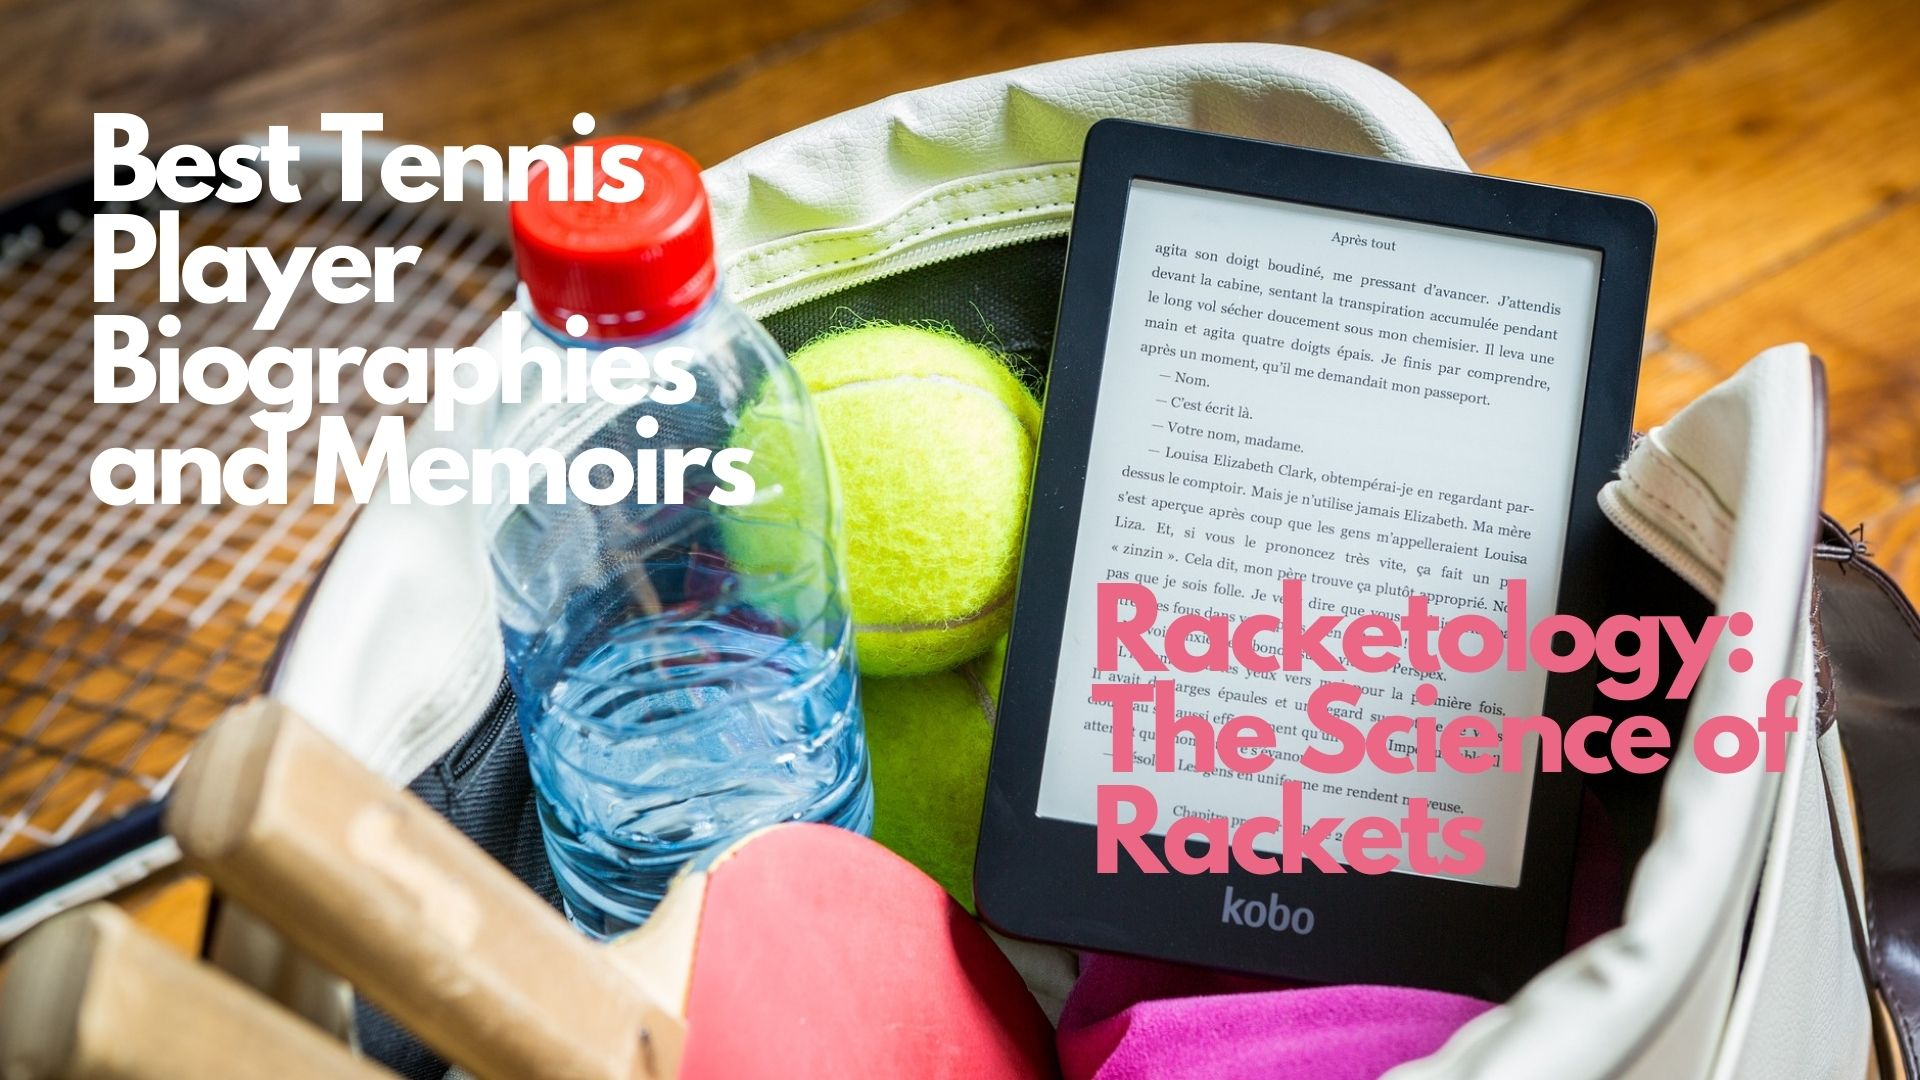 Best Tennis Player Biographies and Memoirs